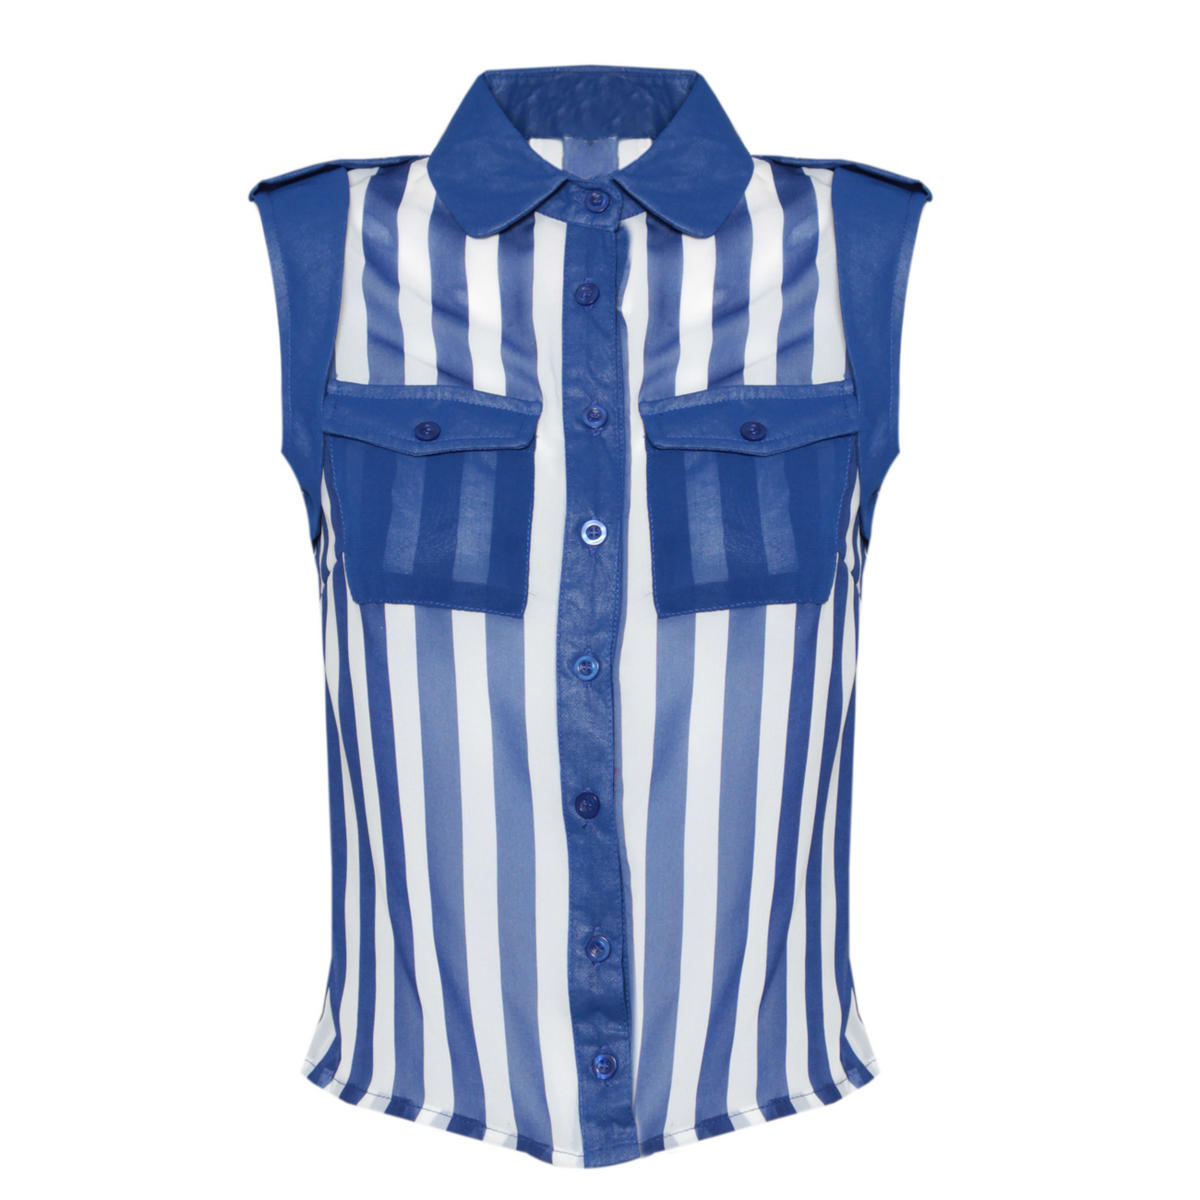 SIZE 14 ONLY Blue And White Striped Sleeveless Shirt Preview